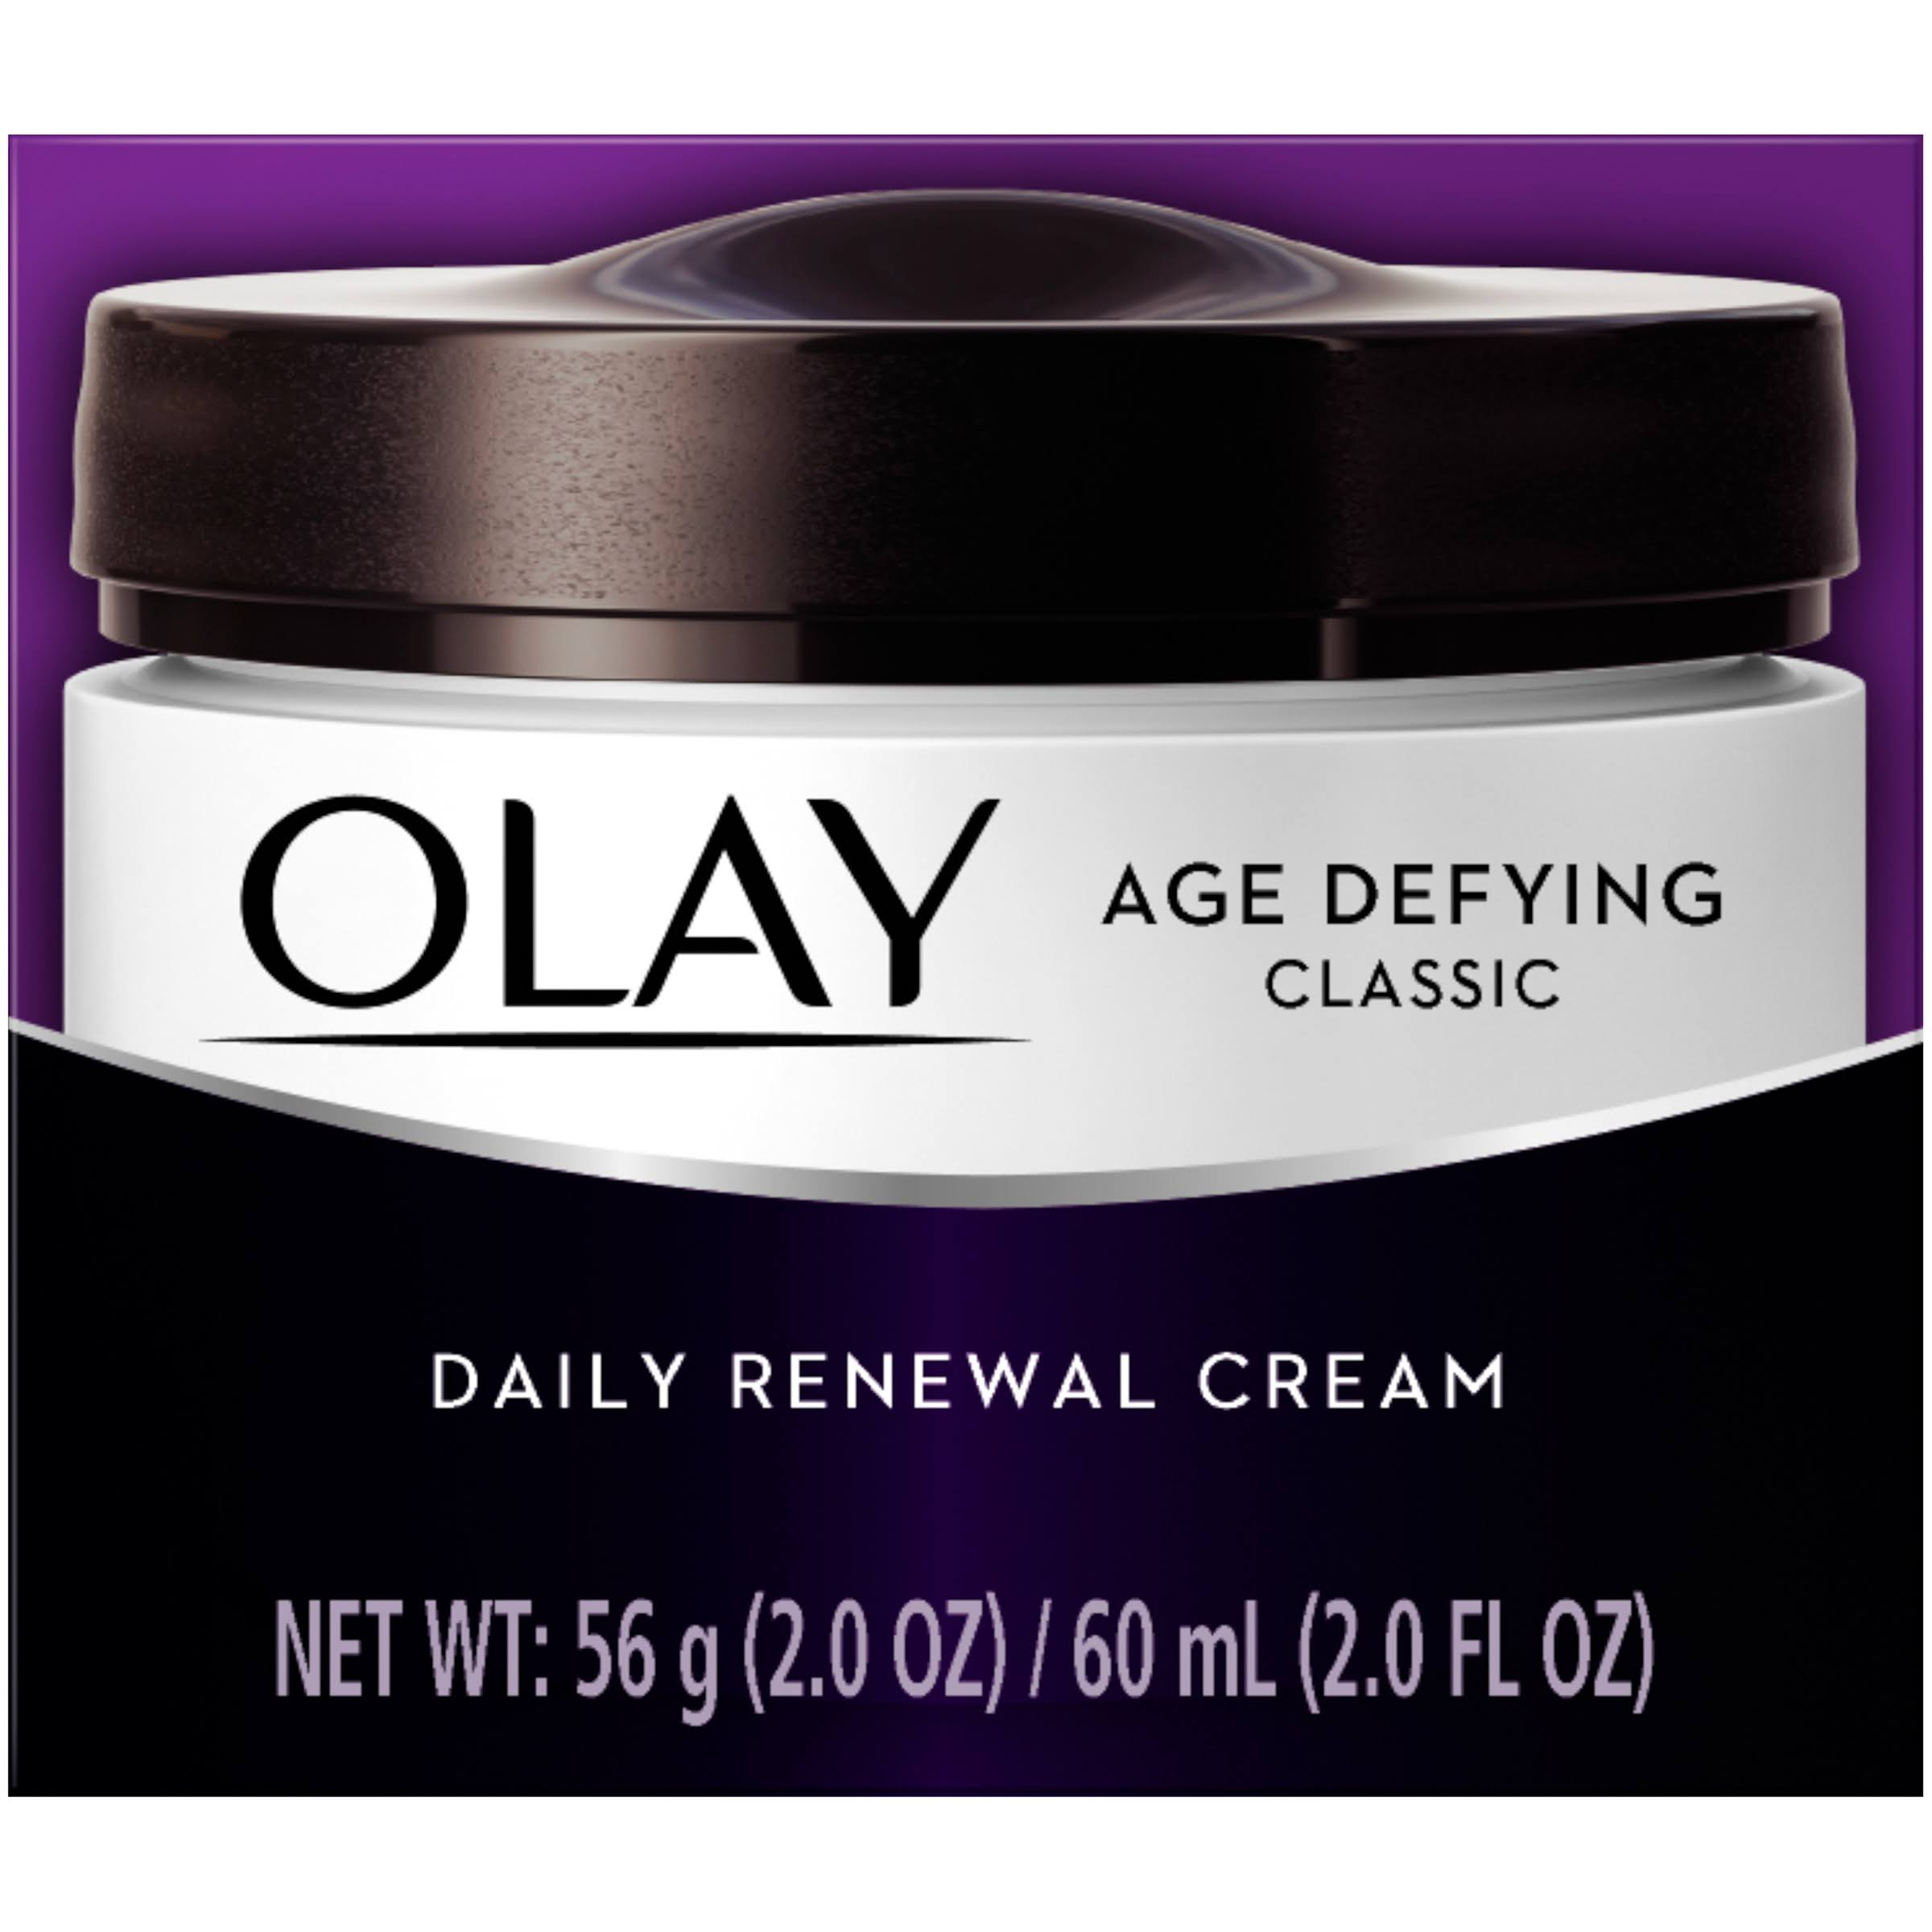 Olay Age Defying Classic Daily Renewal Cream - 2oz